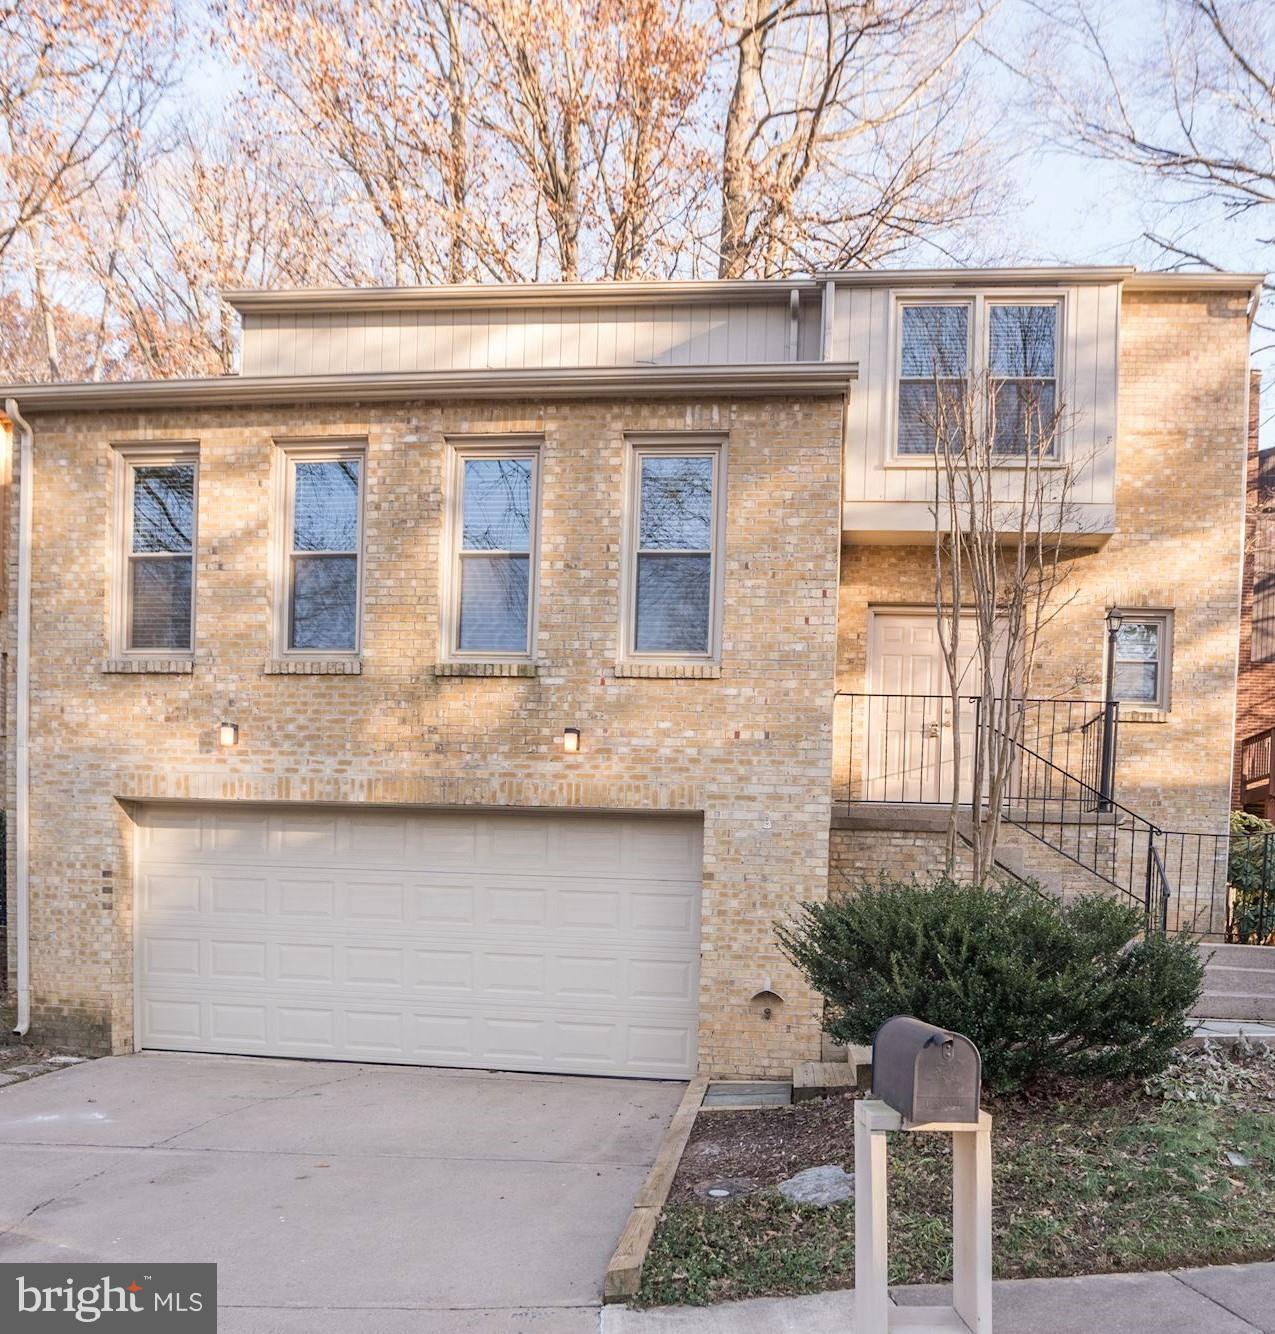 Application in & approved but lease not done yet*Incredible home set in the middle of trees w/Deck -yet in the city of Fairfax *BRAND NEW KITCHEN, MBR Suite W/BRAND NEW BA w/sep shower & tub, All large rms, LR w/vaulted ceiling, Large DR, FR w/FP, REC RM walk-out, NEW carpet* Truly perfect-across from Army Navy Country Club, Cue bus to Metro, stroll to Arties, FFX High